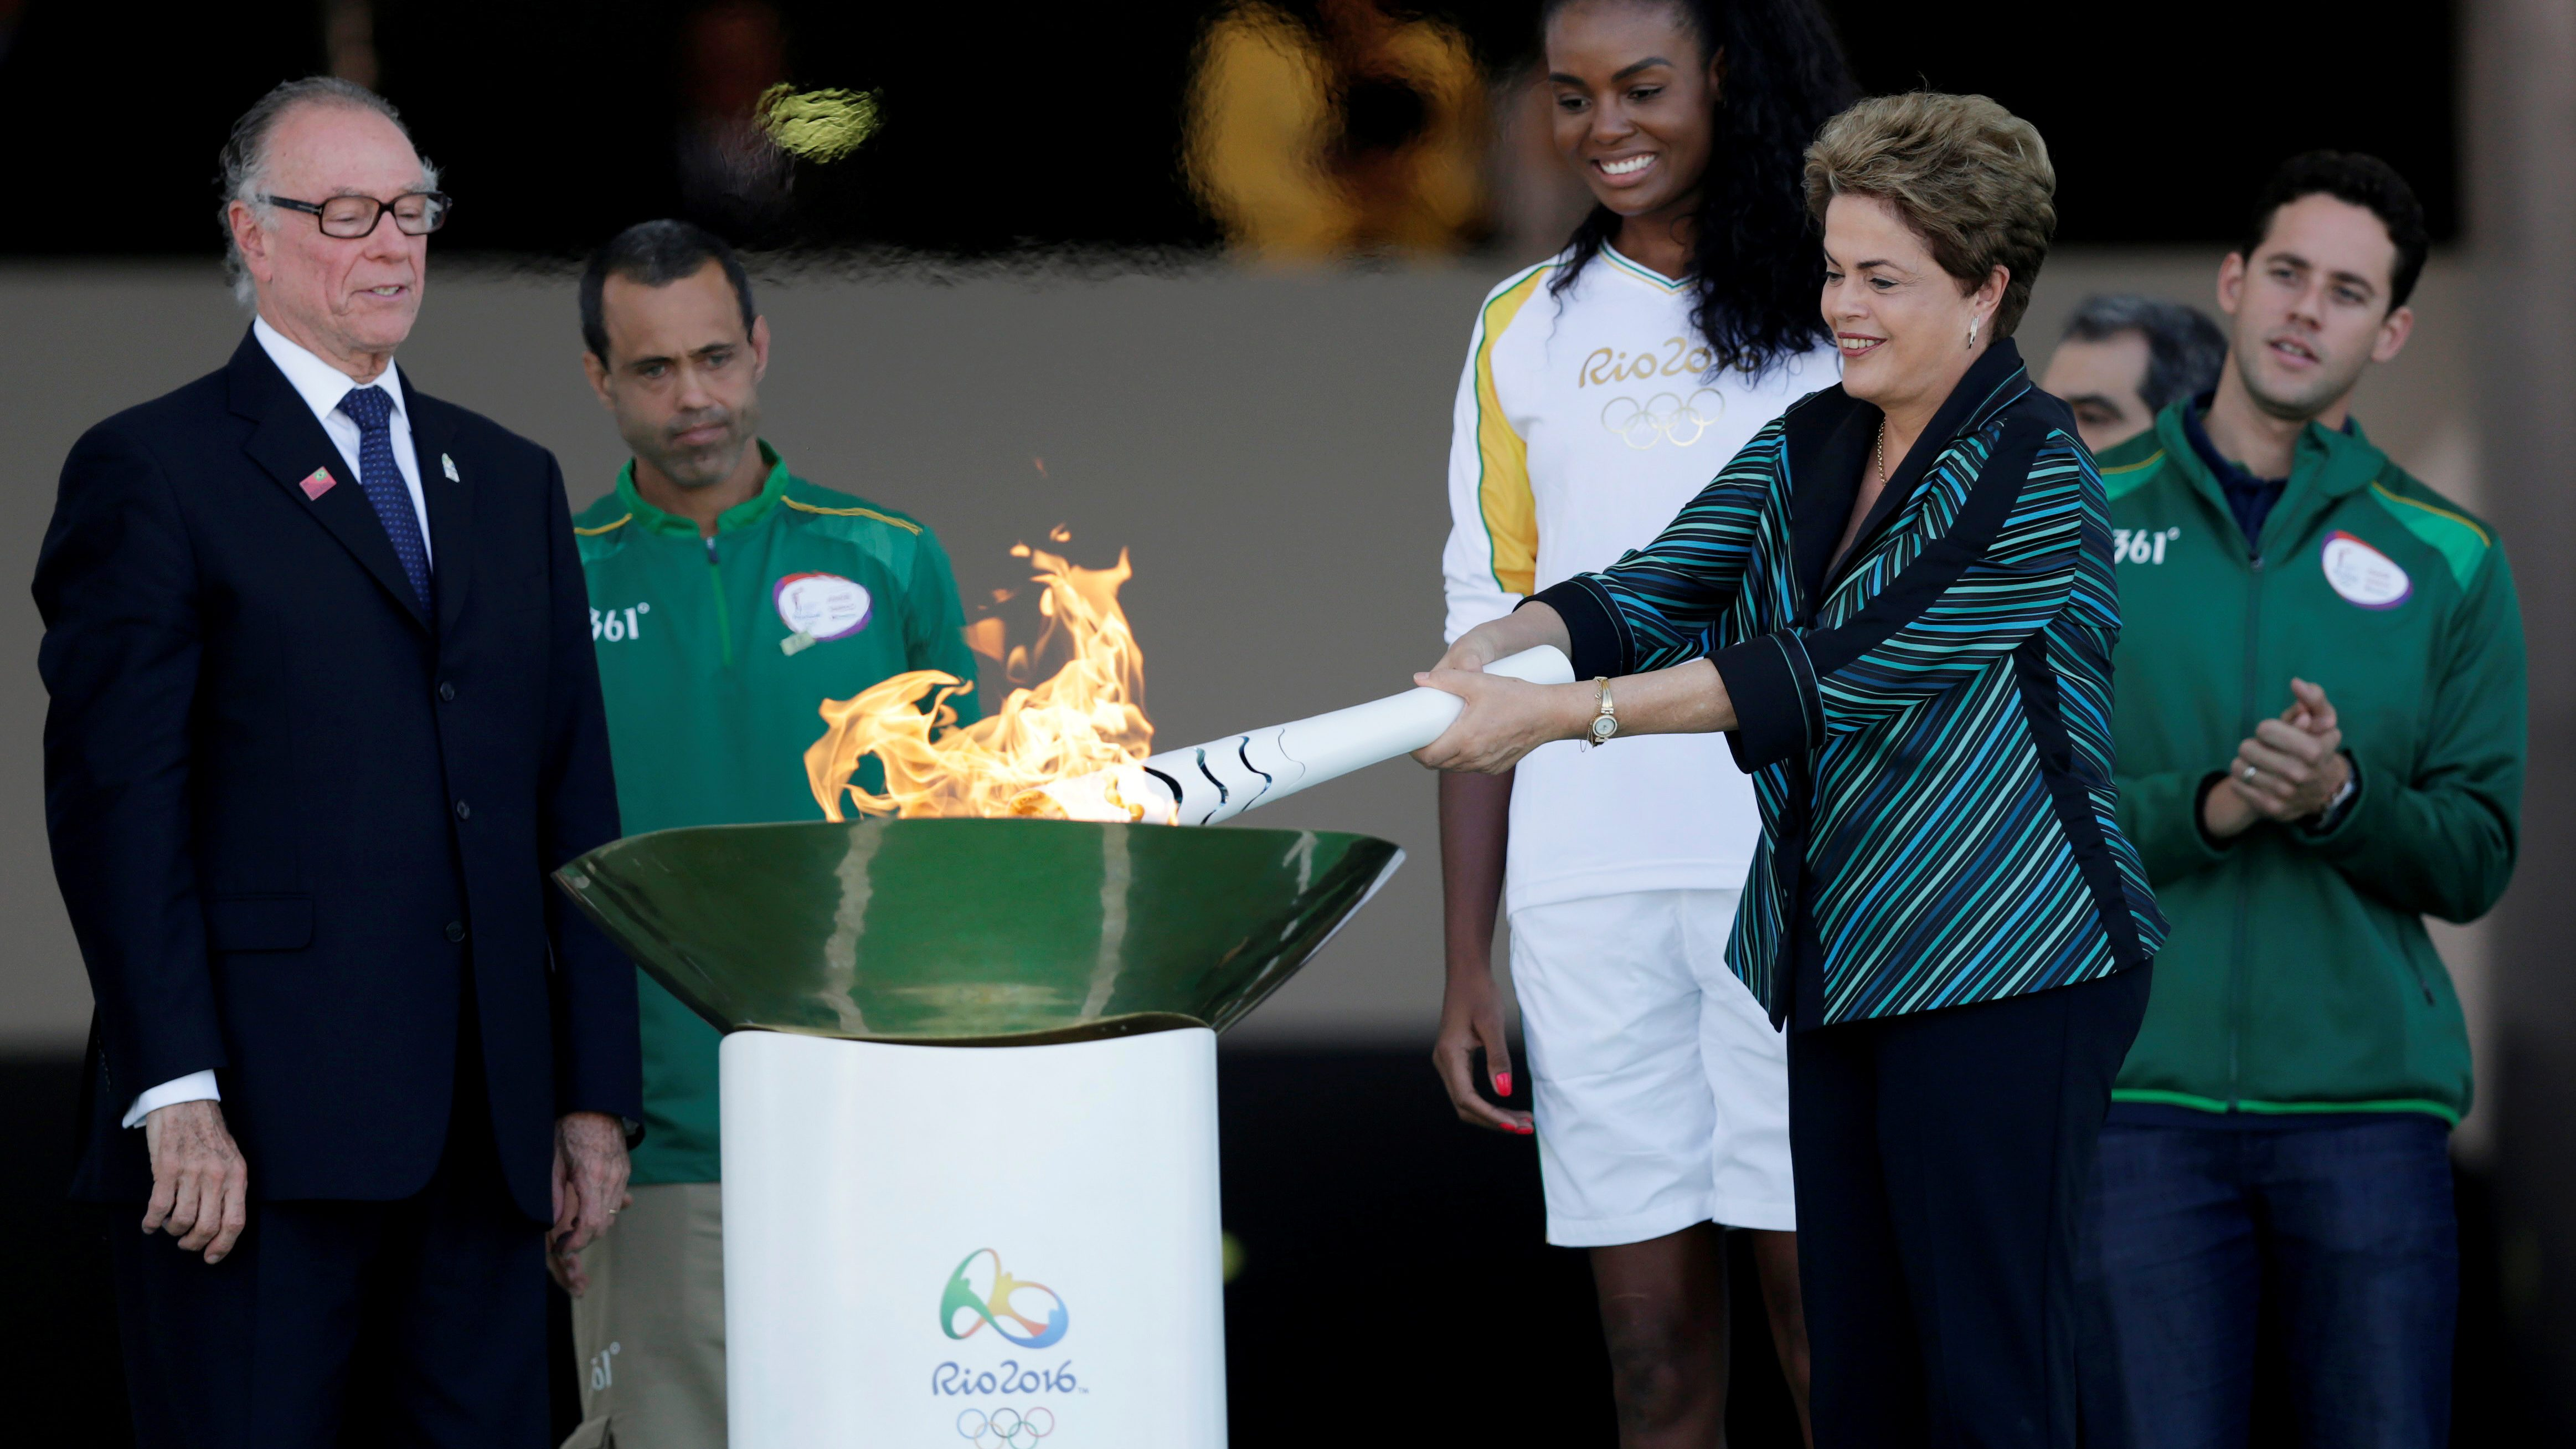 Brazil's President Rousseff lights a cauldron with the Olympic Flame next to Fabiana Claudino, captain of the Brazilian volleyball team, during the Olympic Flame torch relay in Brasilia